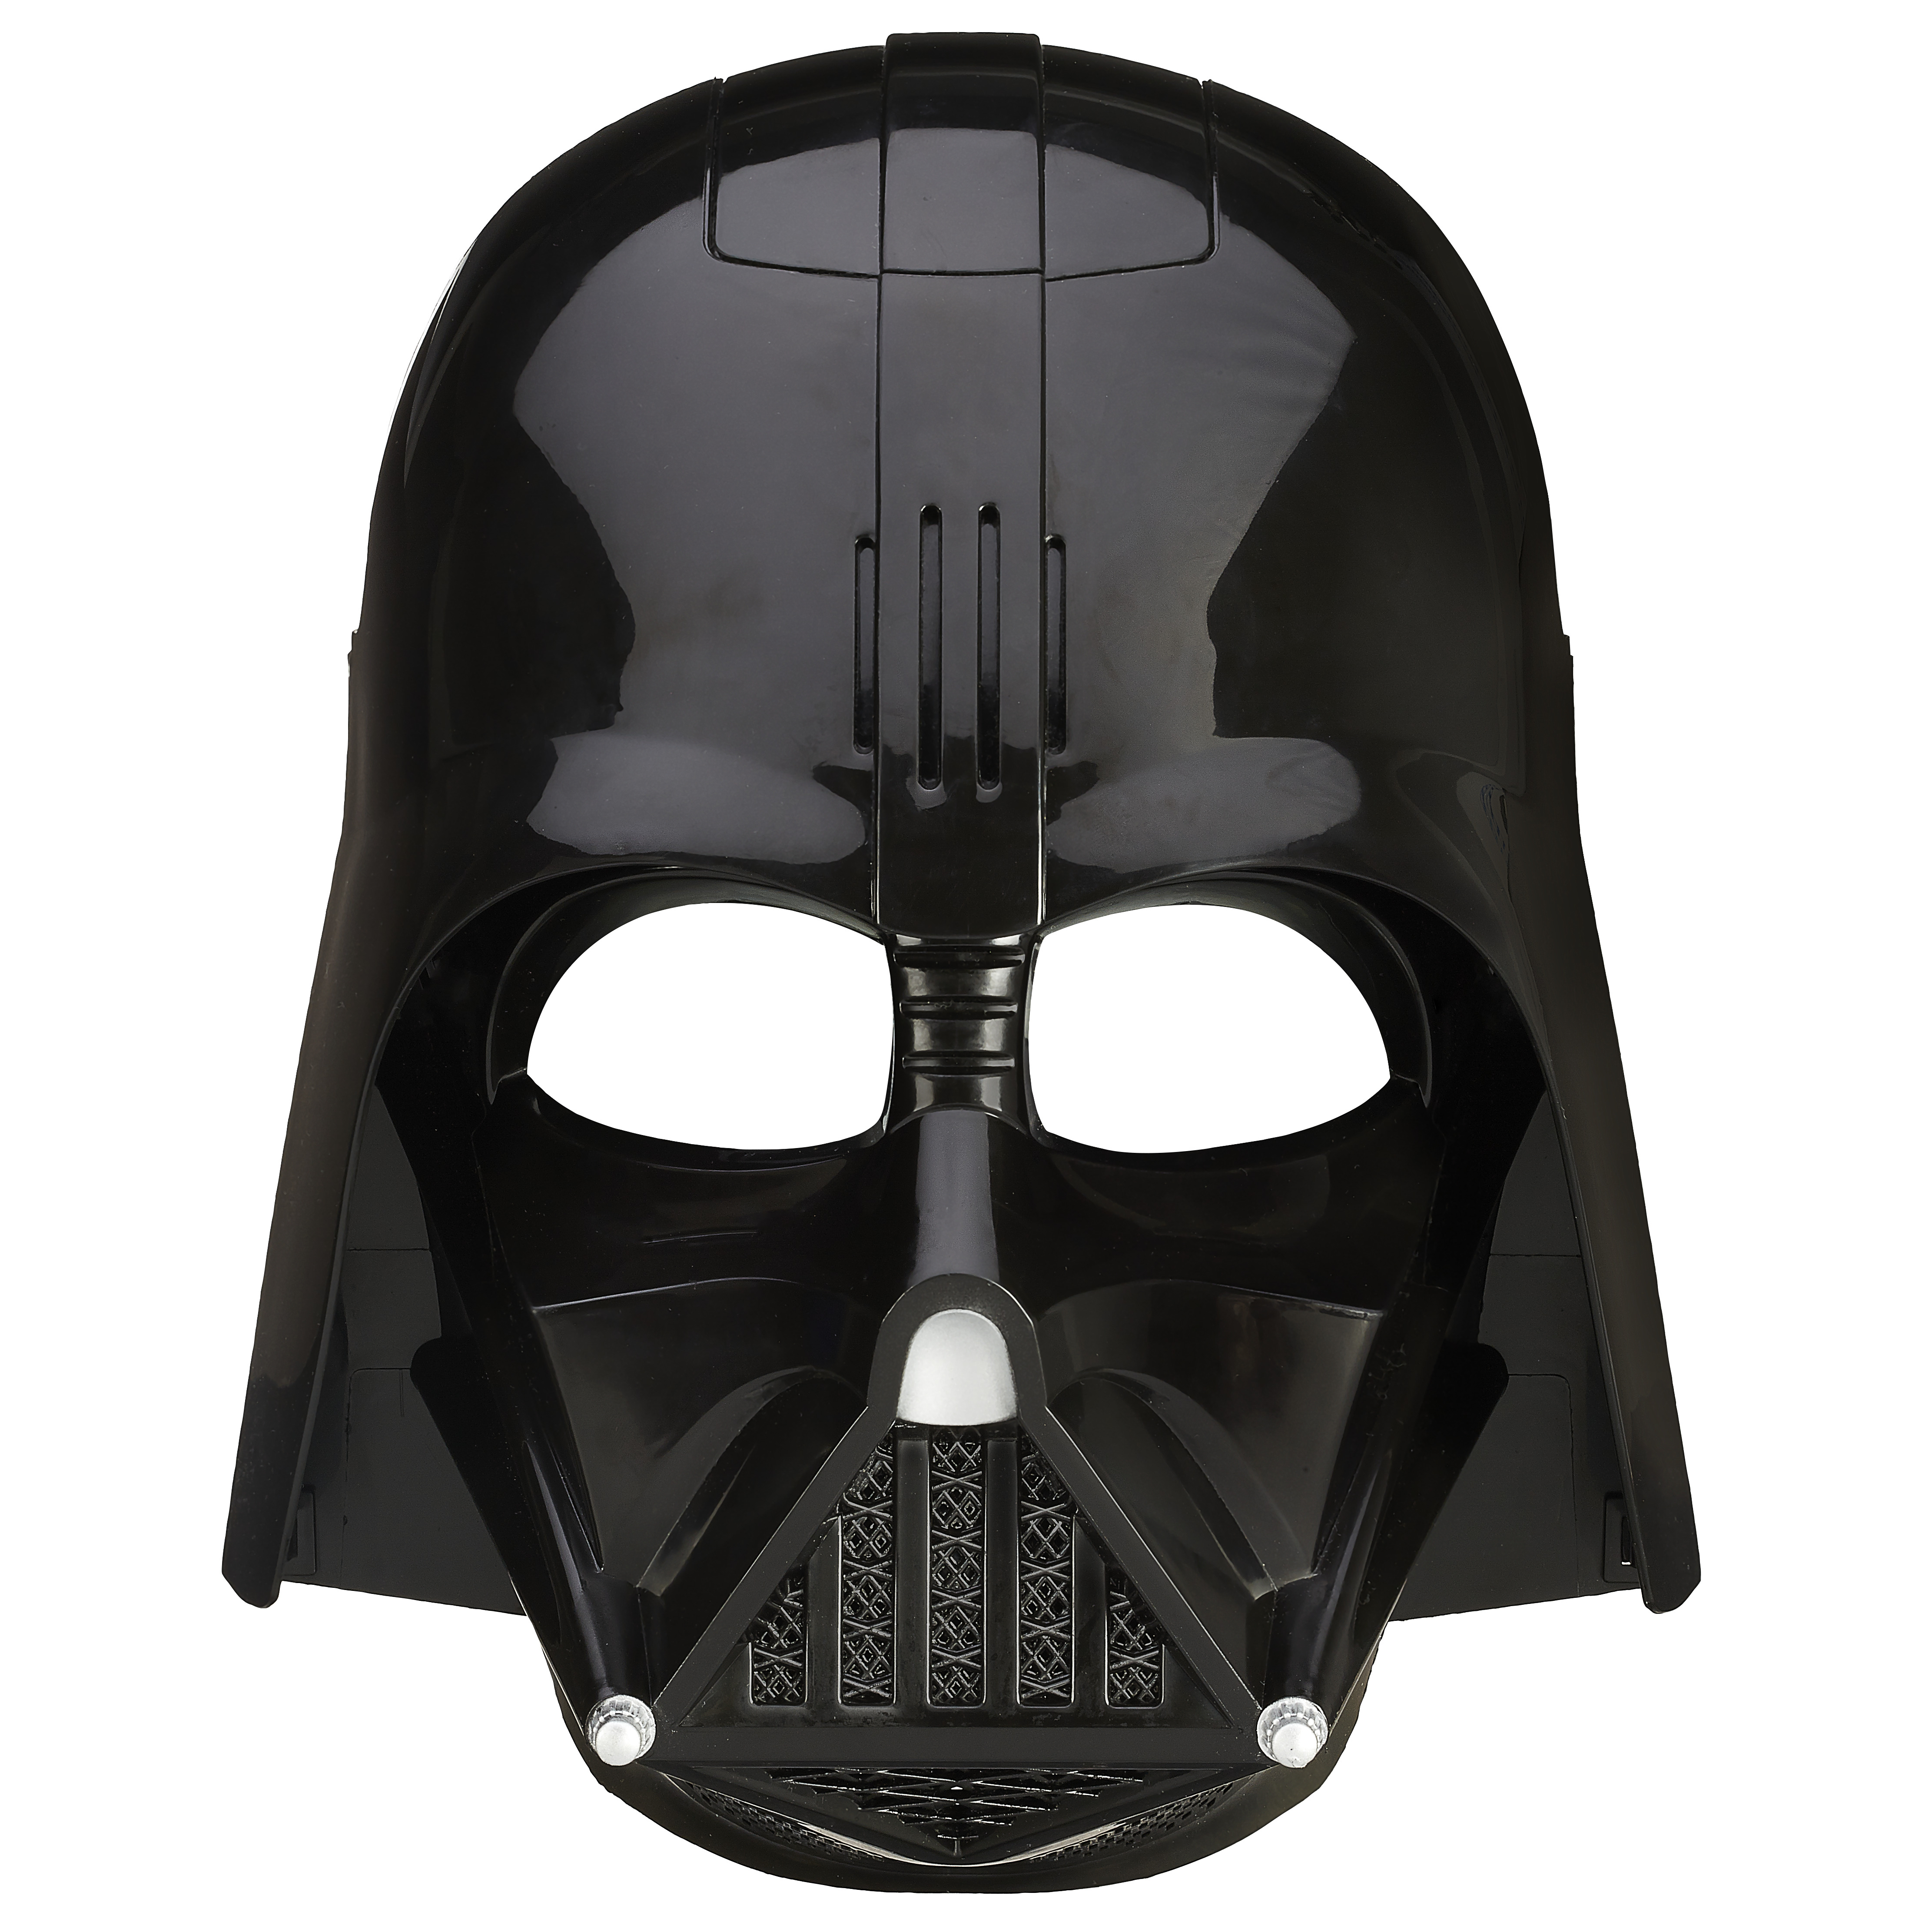 star wars darth vader voice changer helmet graphic policy. Black Bedroom Furniture Sets. Home Design Ideas